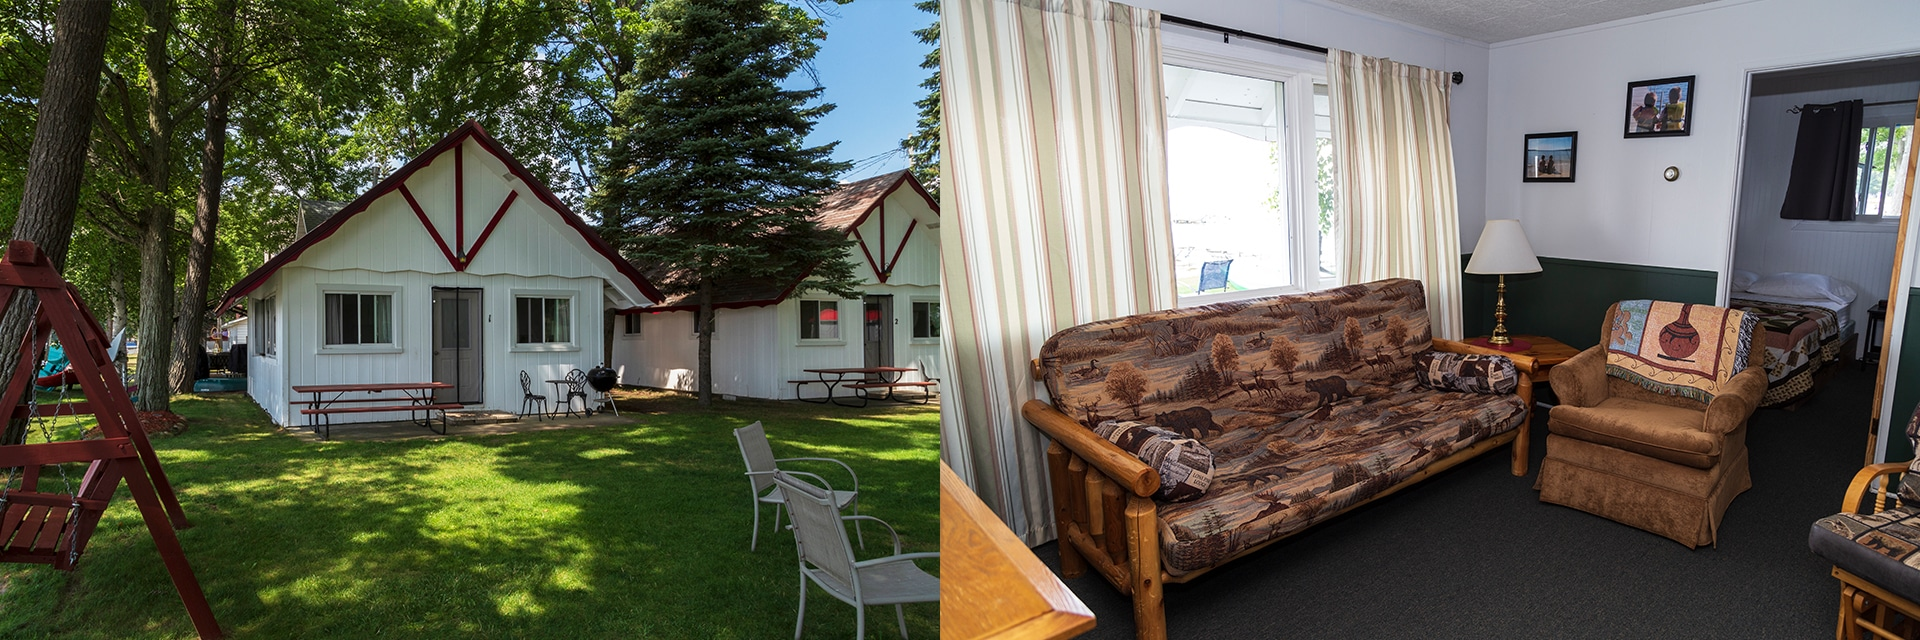 Cabin #1 - 2 Bedroom/1 Bath Cabin on the Water (Cabins 2, 3, and 4 are Similar)